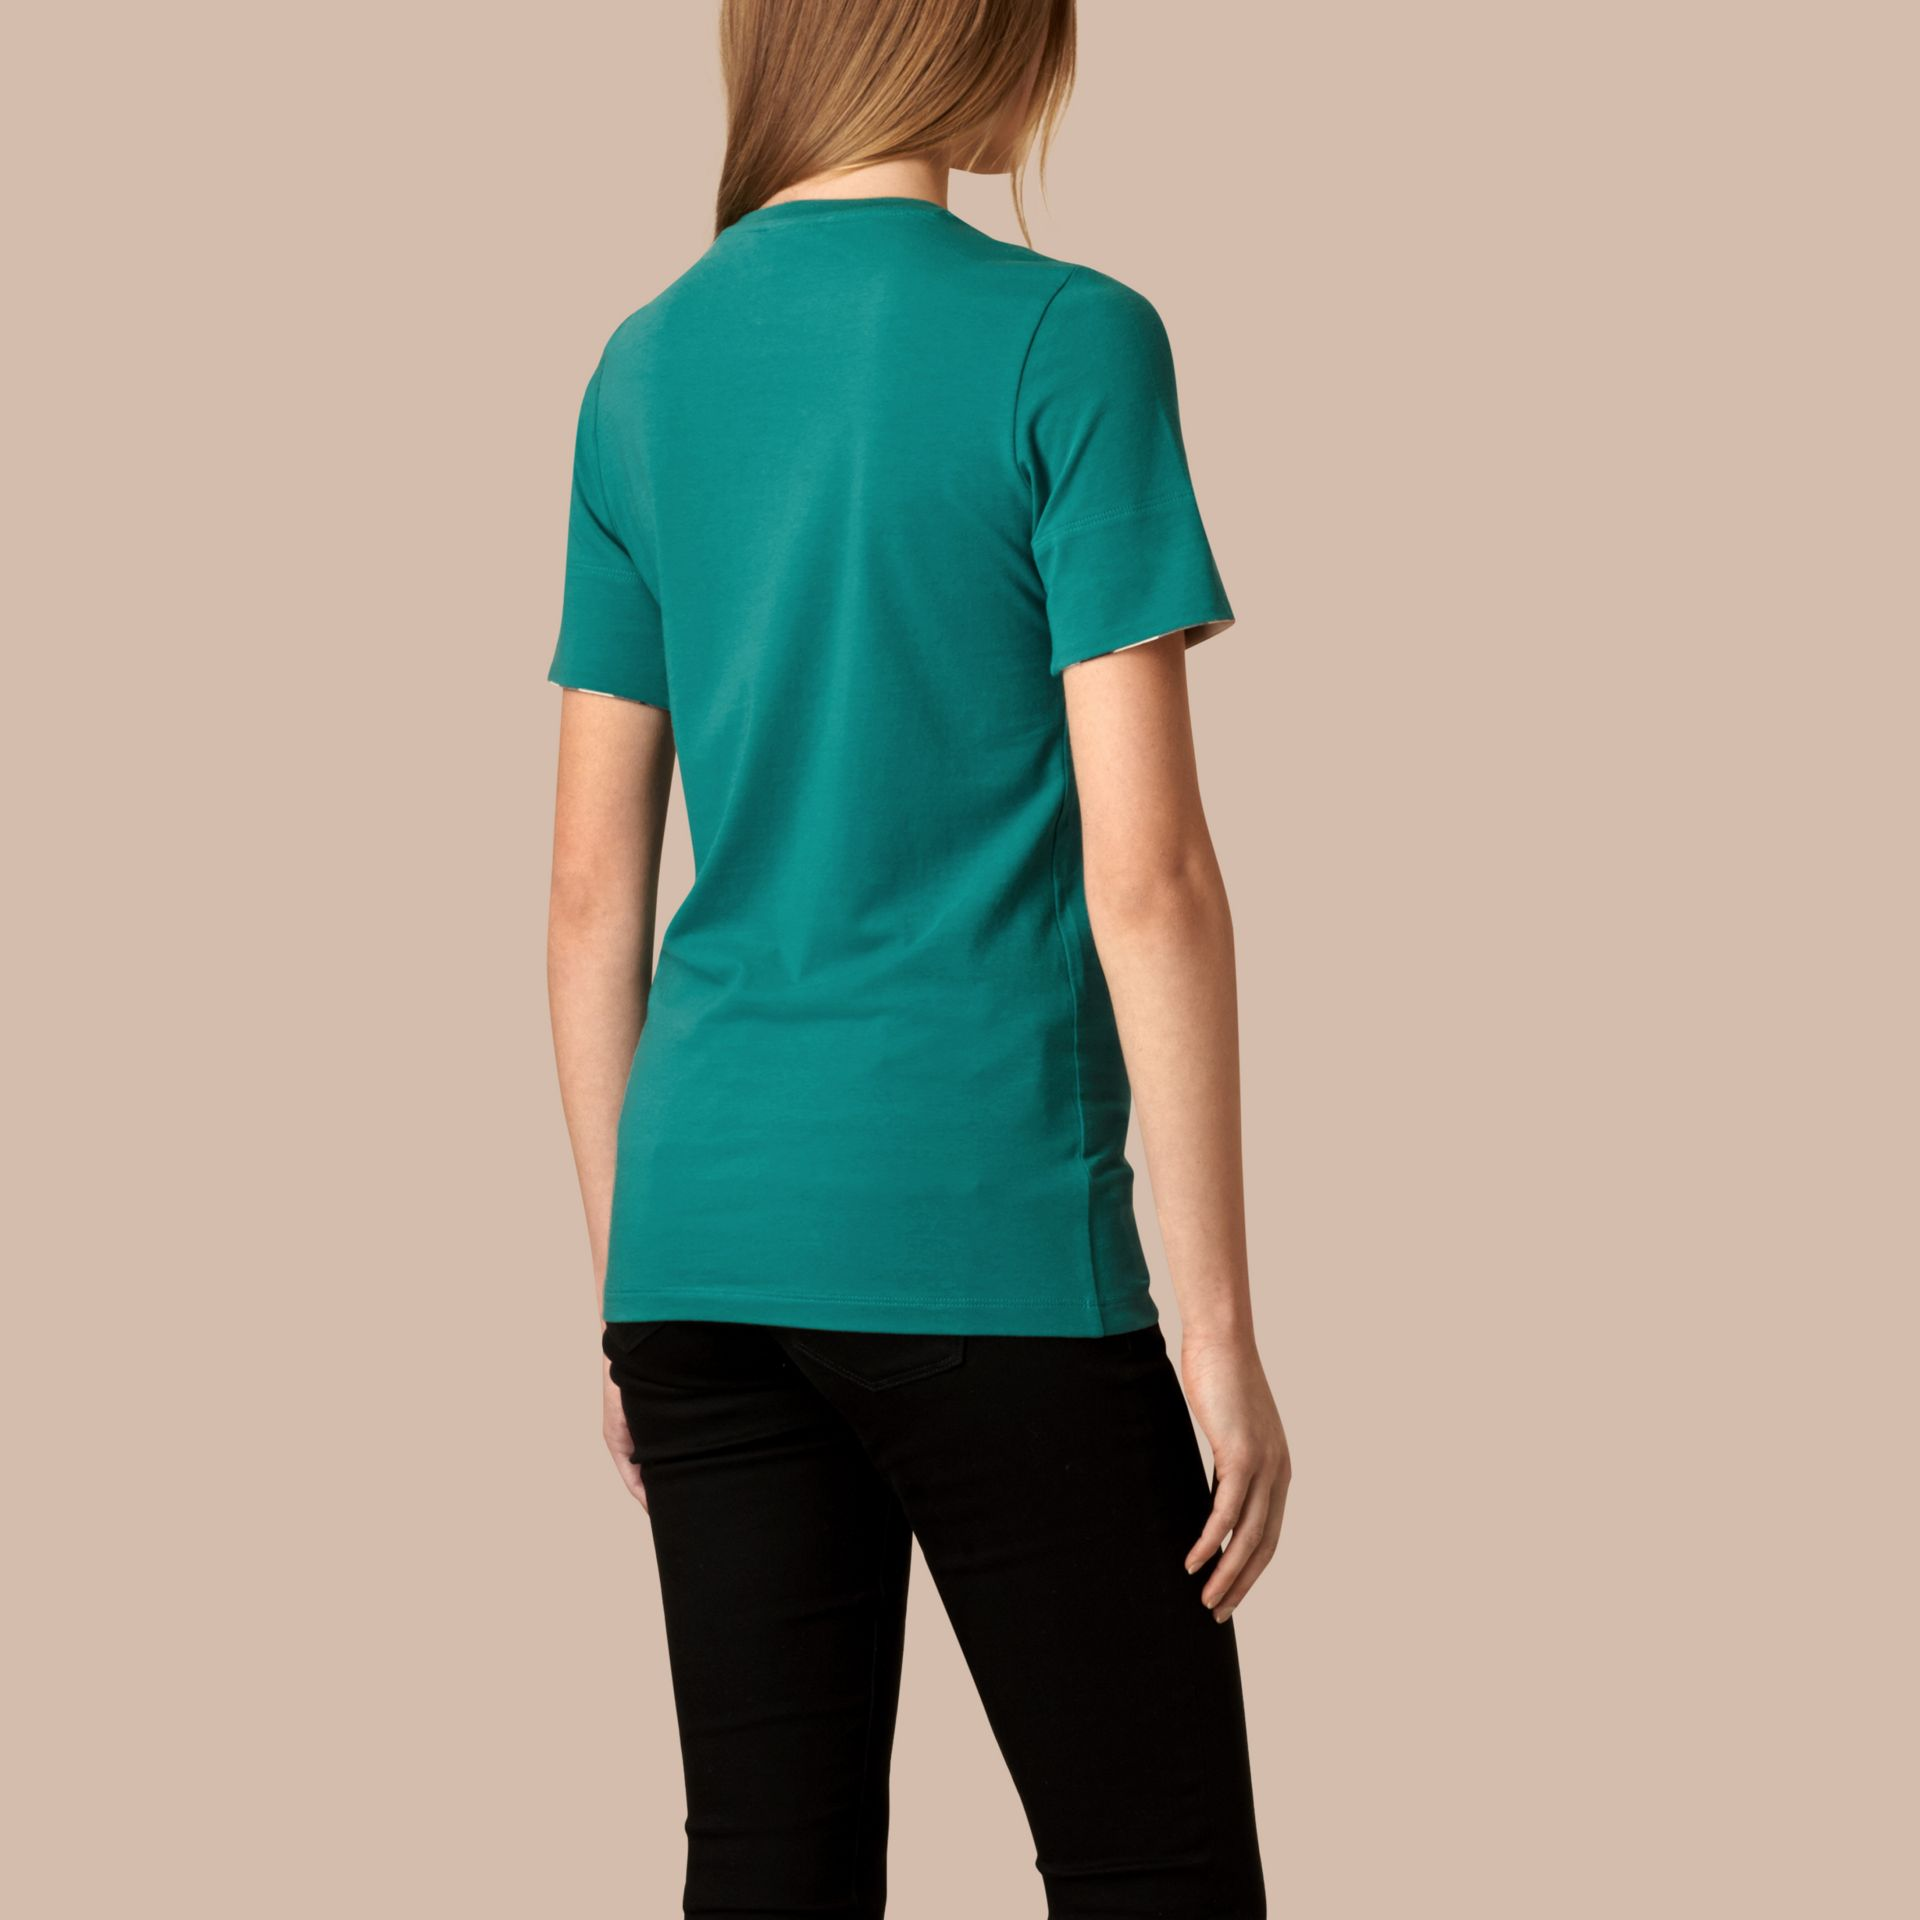 Aqua green Check Cuff Stretch Cotton T-Shirt Aqua Green - gallery image 2